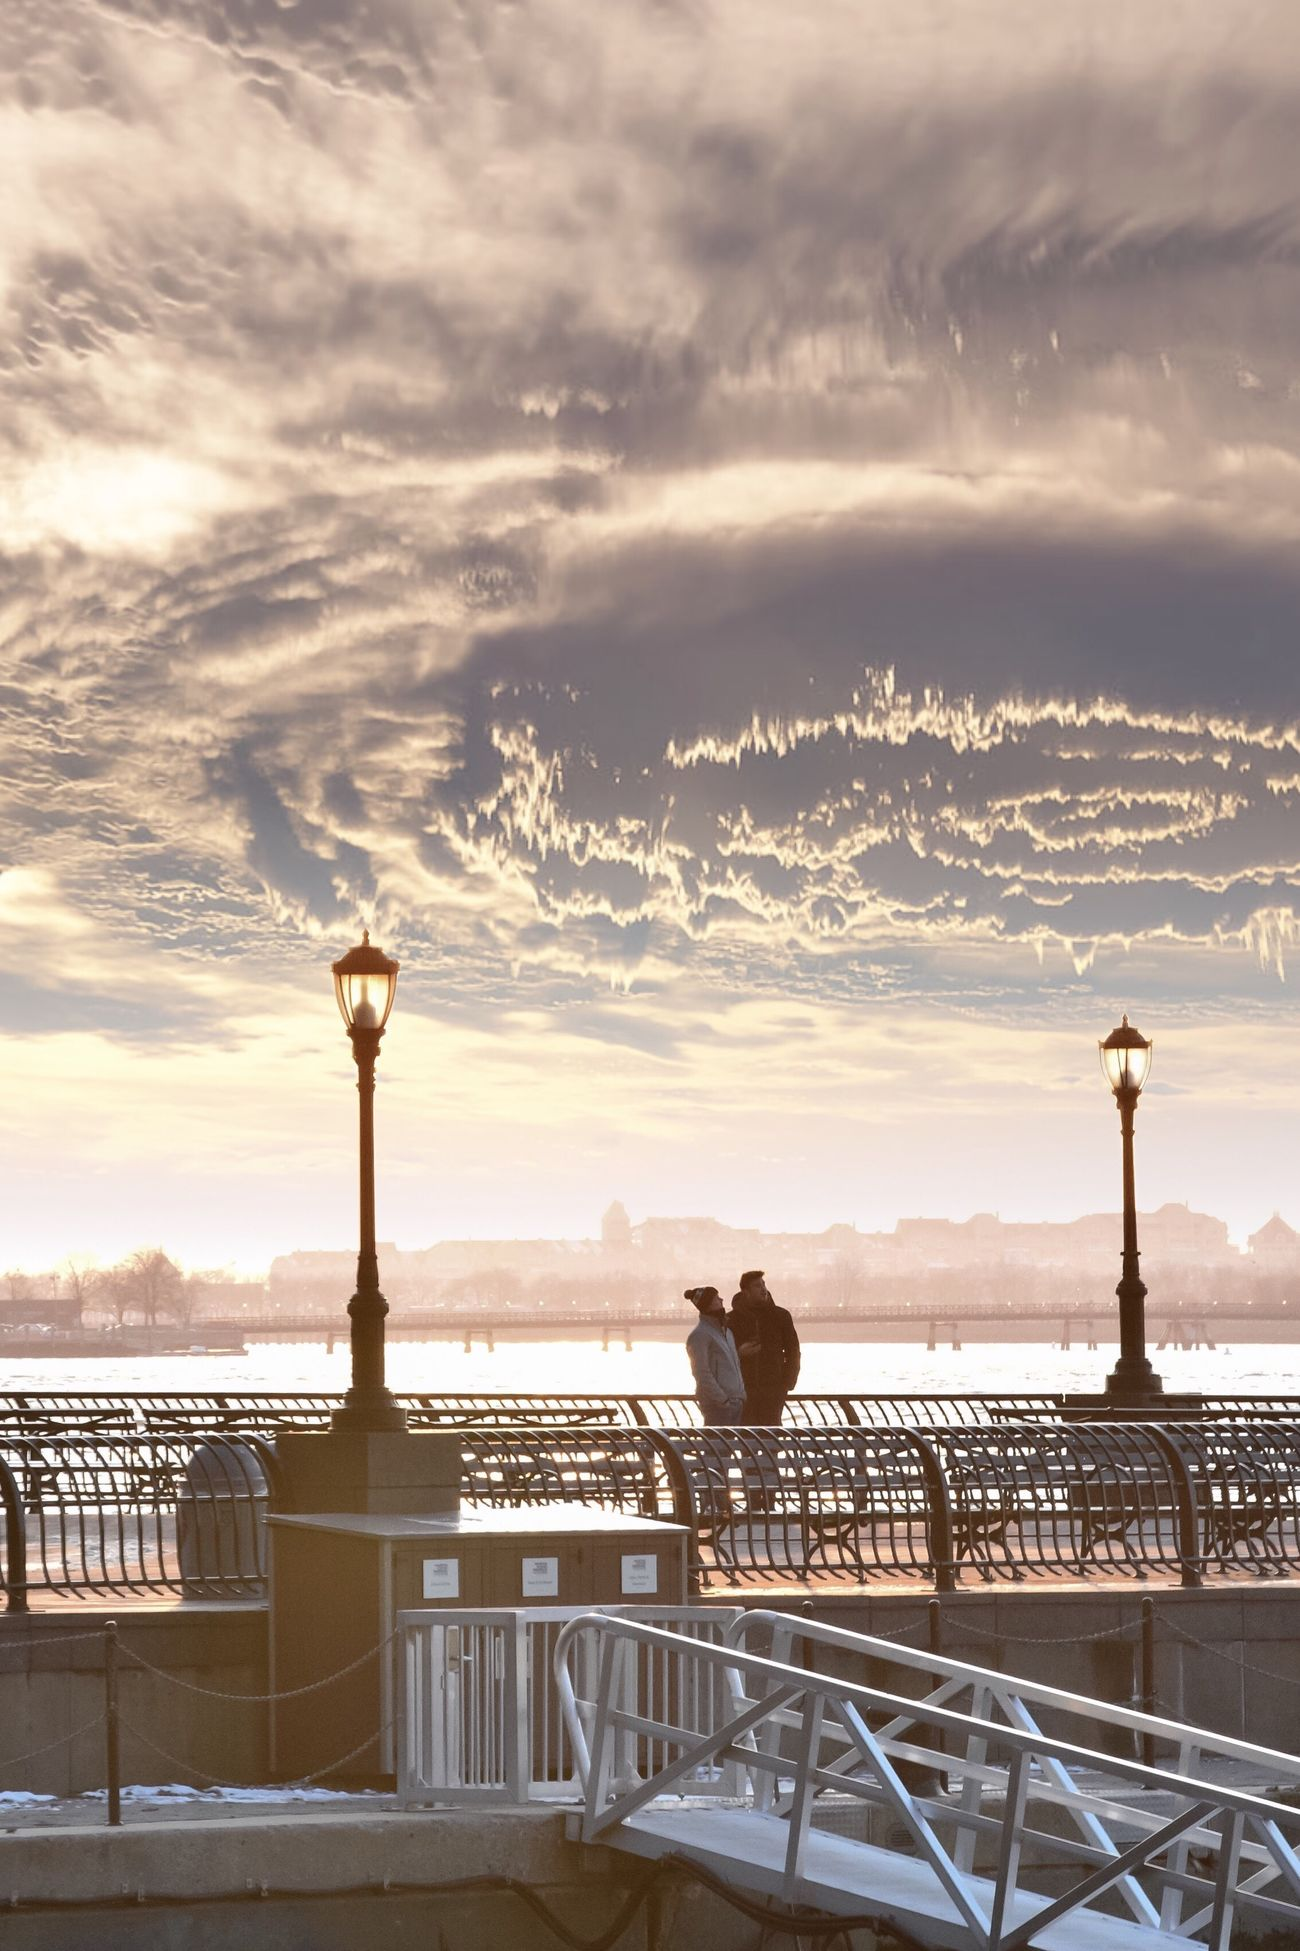 Sunset Travel Destinations Cityscape Outdoors Cloud - Sky Scenics Beauty In Nature Special Effects Effects SkyLab Tranquil Scene Orange Sky Outdoor Beauty Naturelovers Sunset_collection Silhouettes Beauty In Nature Sunset Silhouettes Silhouette_collection Nature_collection Nature Photography